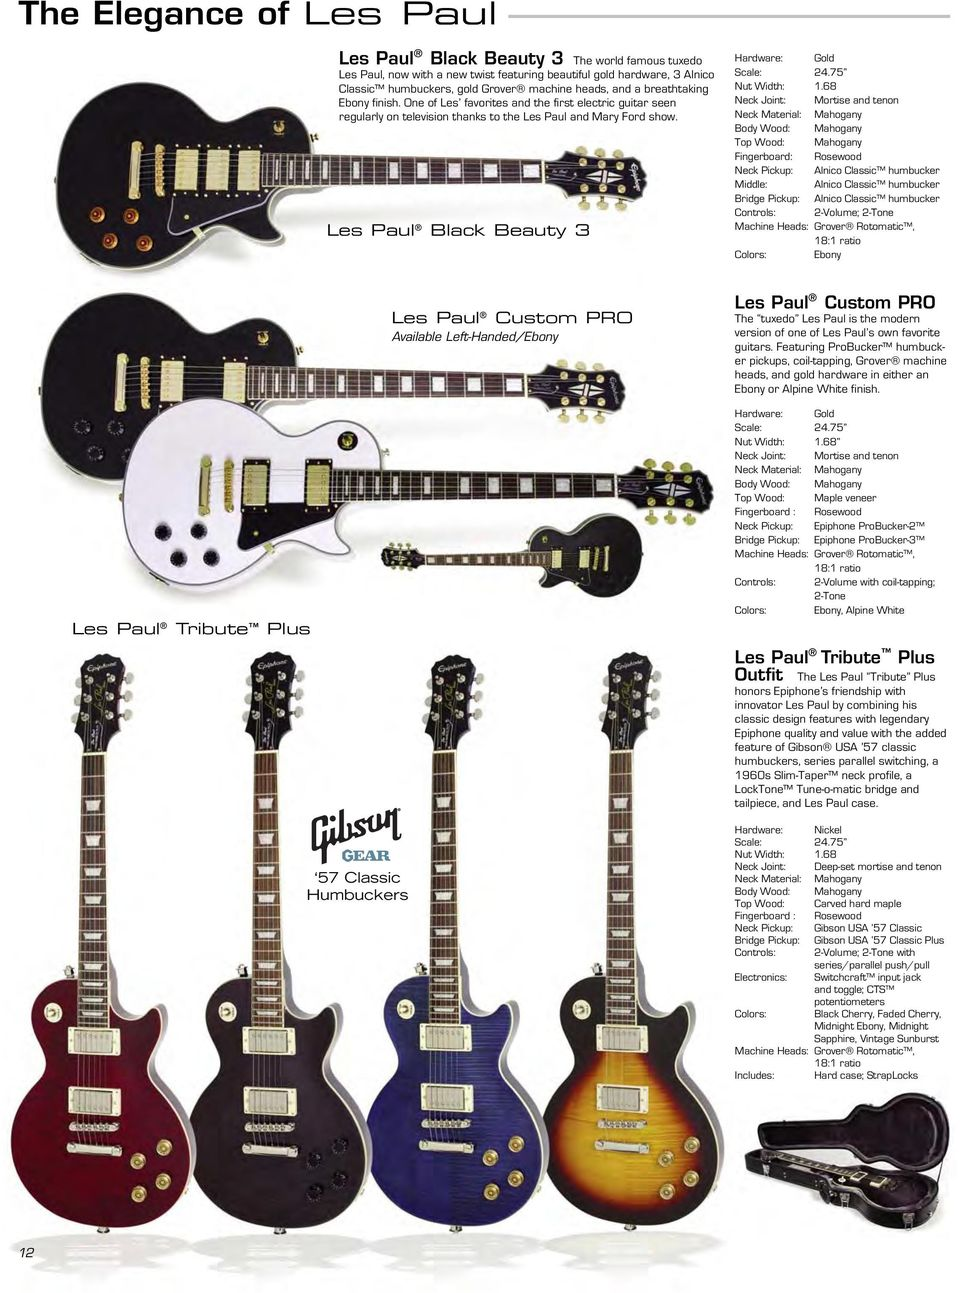 Epiphone Guitar Co A Part Of The Gibson Family Brands 1510 Elm Humbuckers 3way Toggle Switch 2 Volumes Tones Coil Tap Reverse Les Paul Black Beauty 3 Hardware Gold Nut Width 1